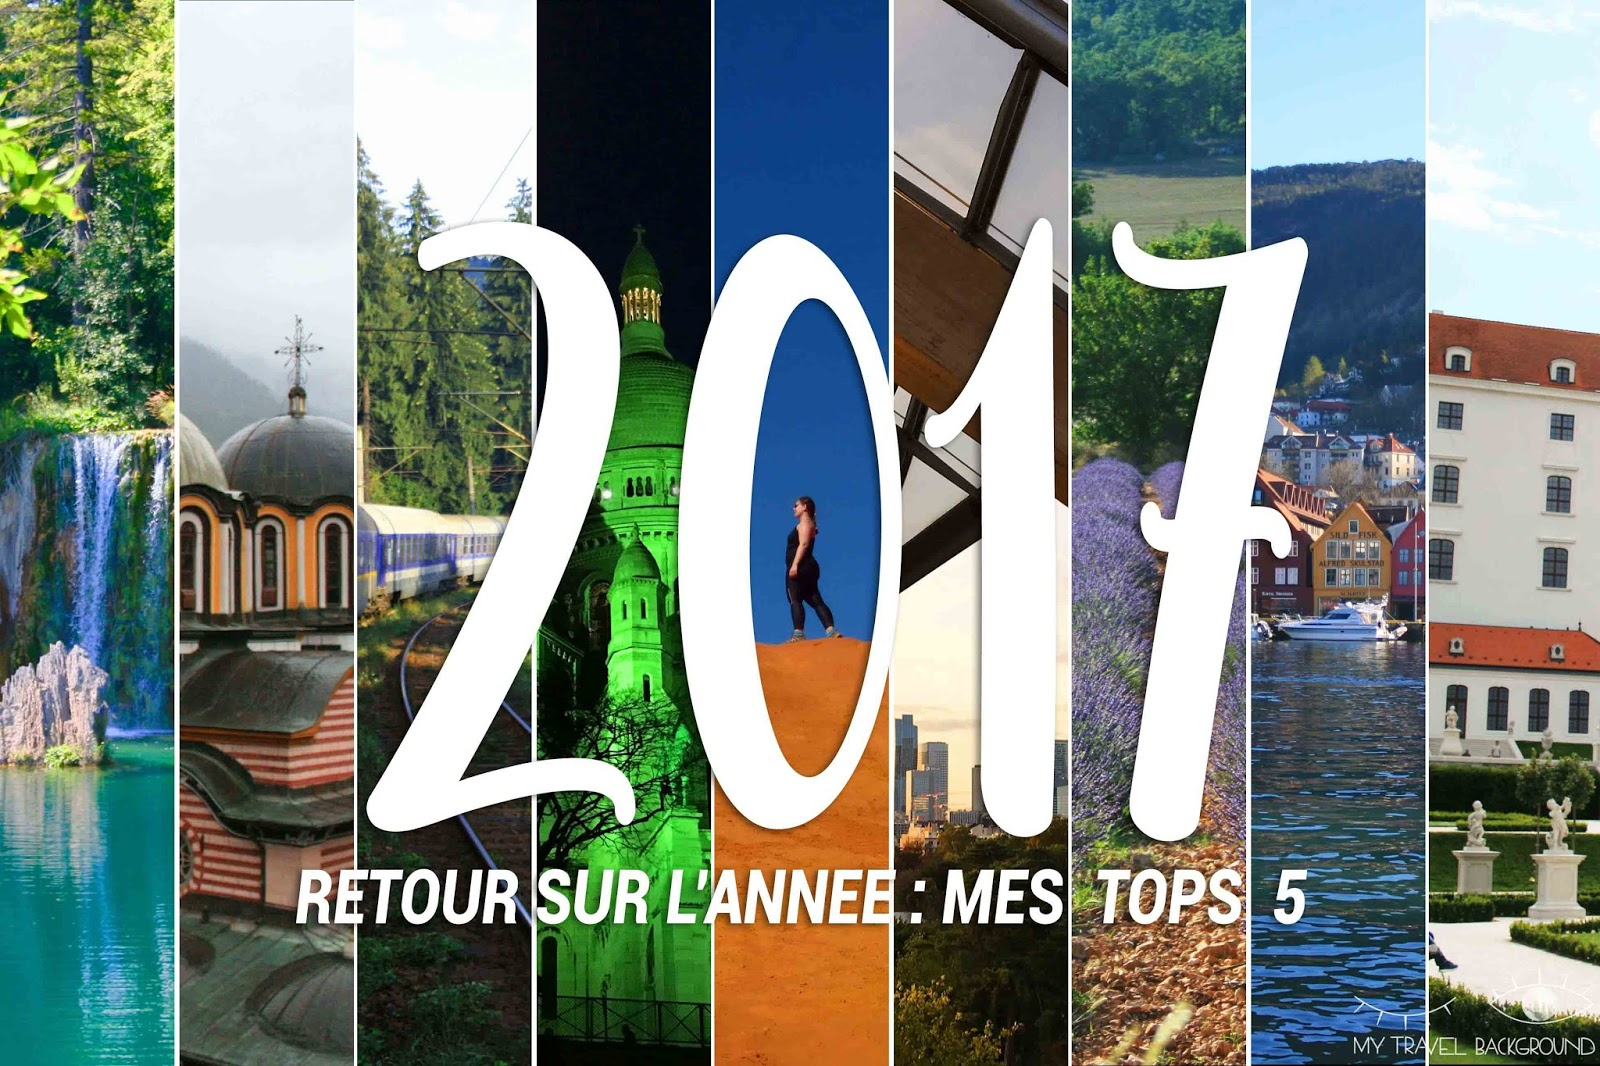 My Travel Background : mes tops 5 2017 !